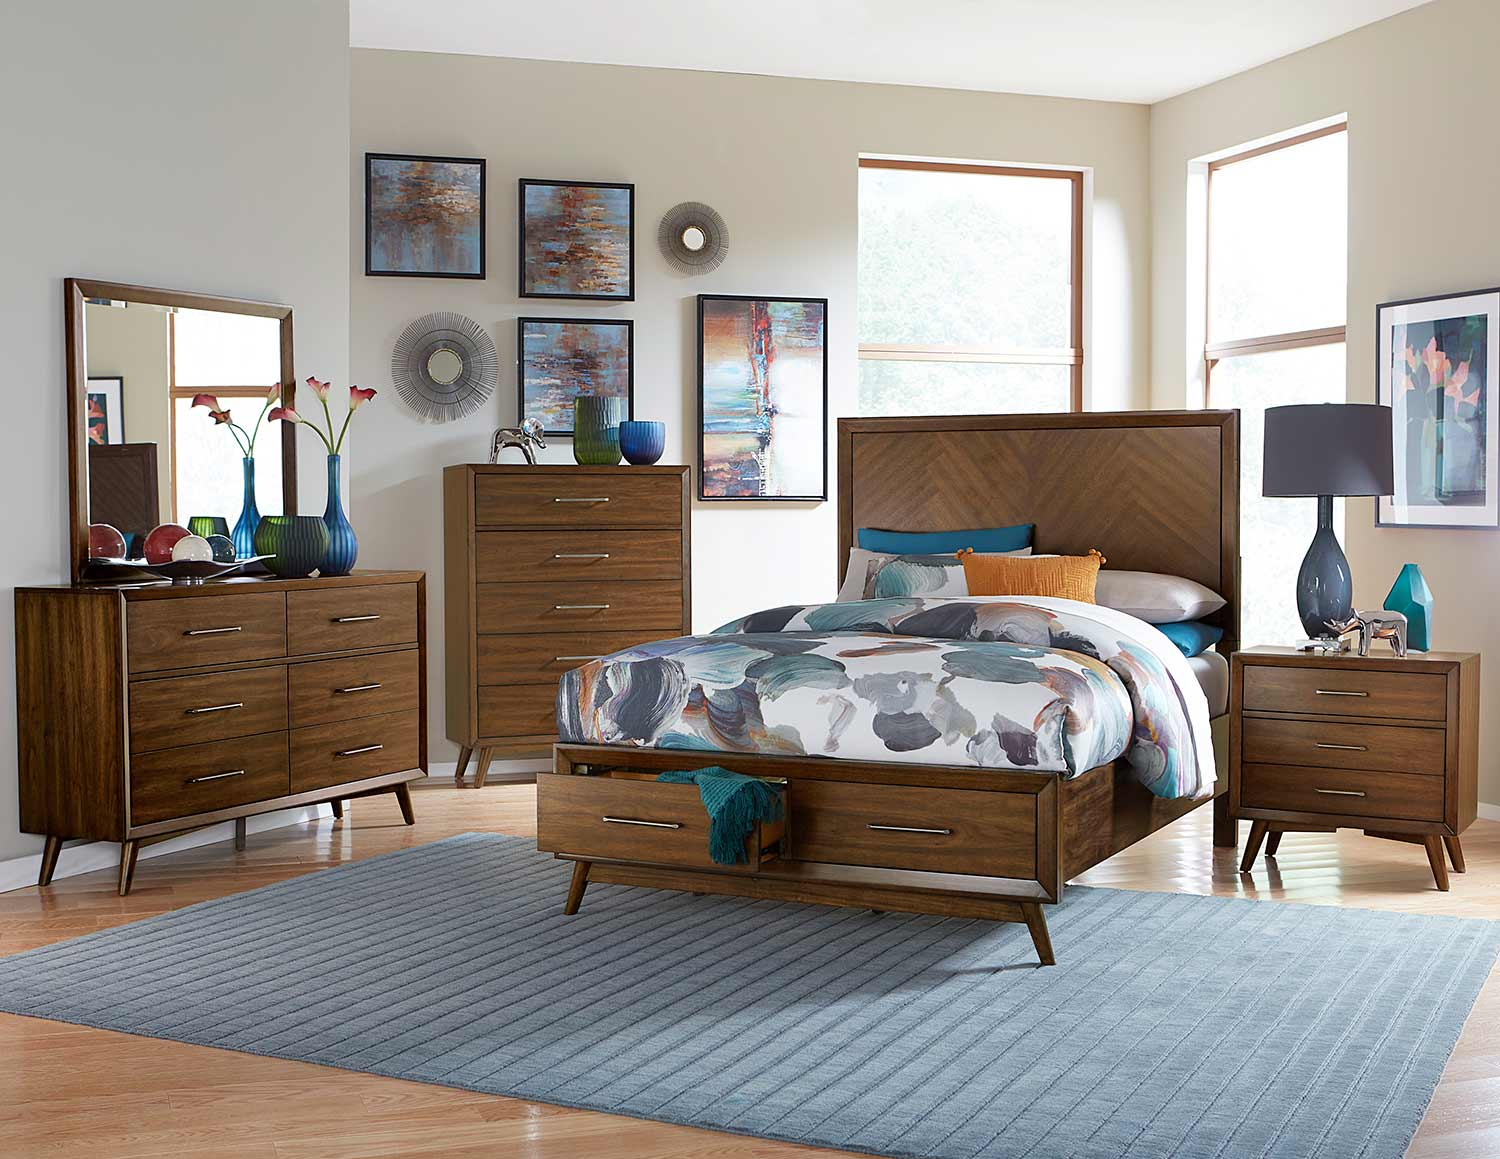 Homelegance Raku Platform Bedroom Set - Warm Walnut